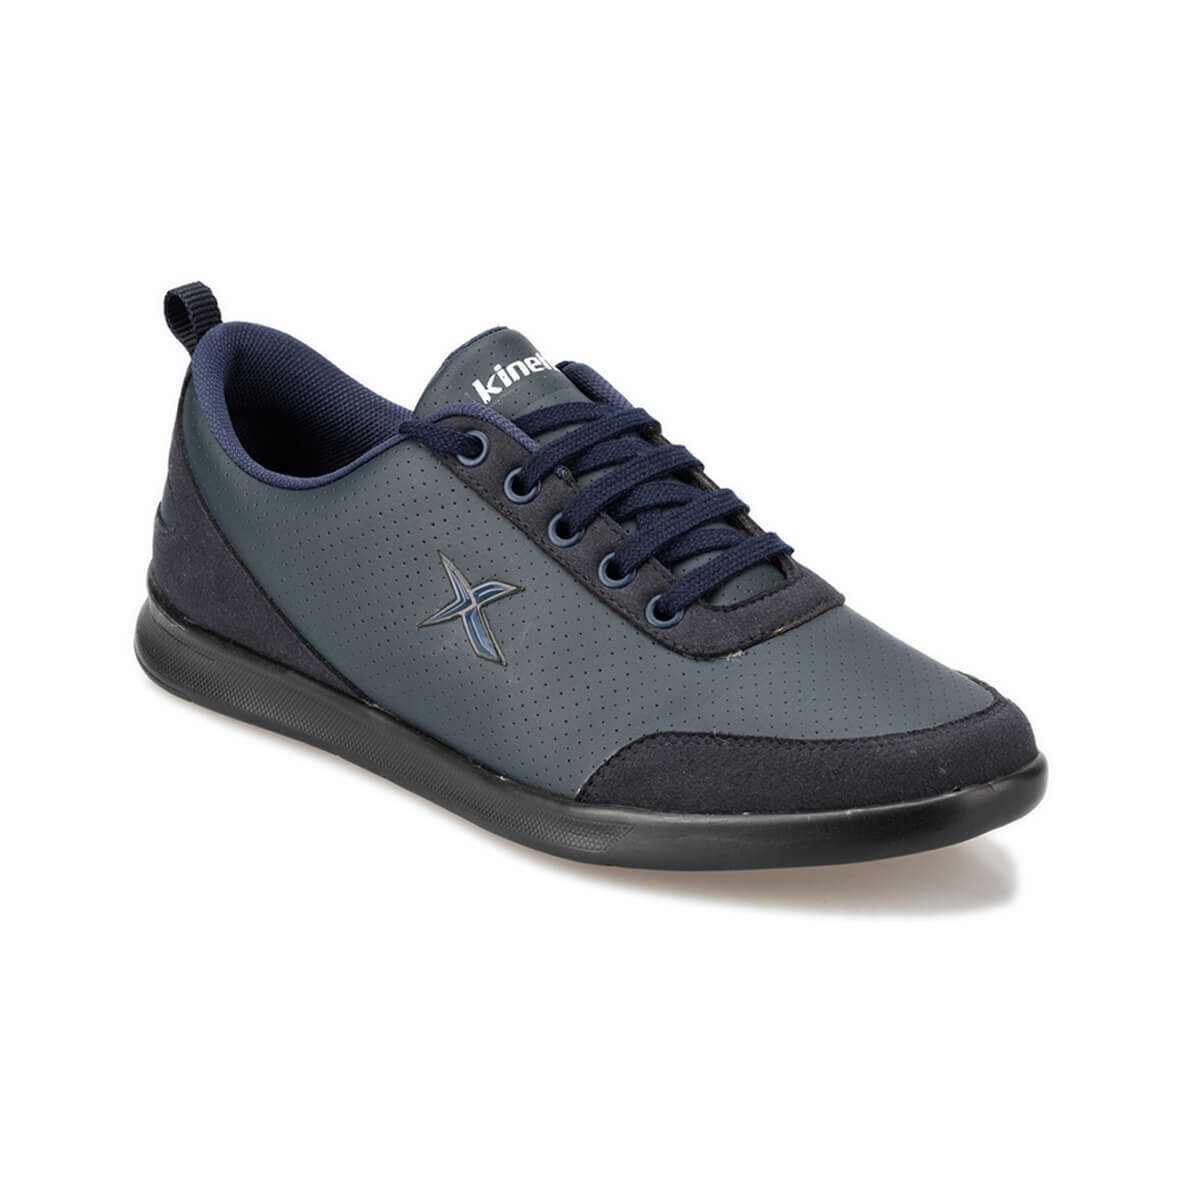 FLO LIDA 9PR Navy Blue Men 'S Shoes KINETIX